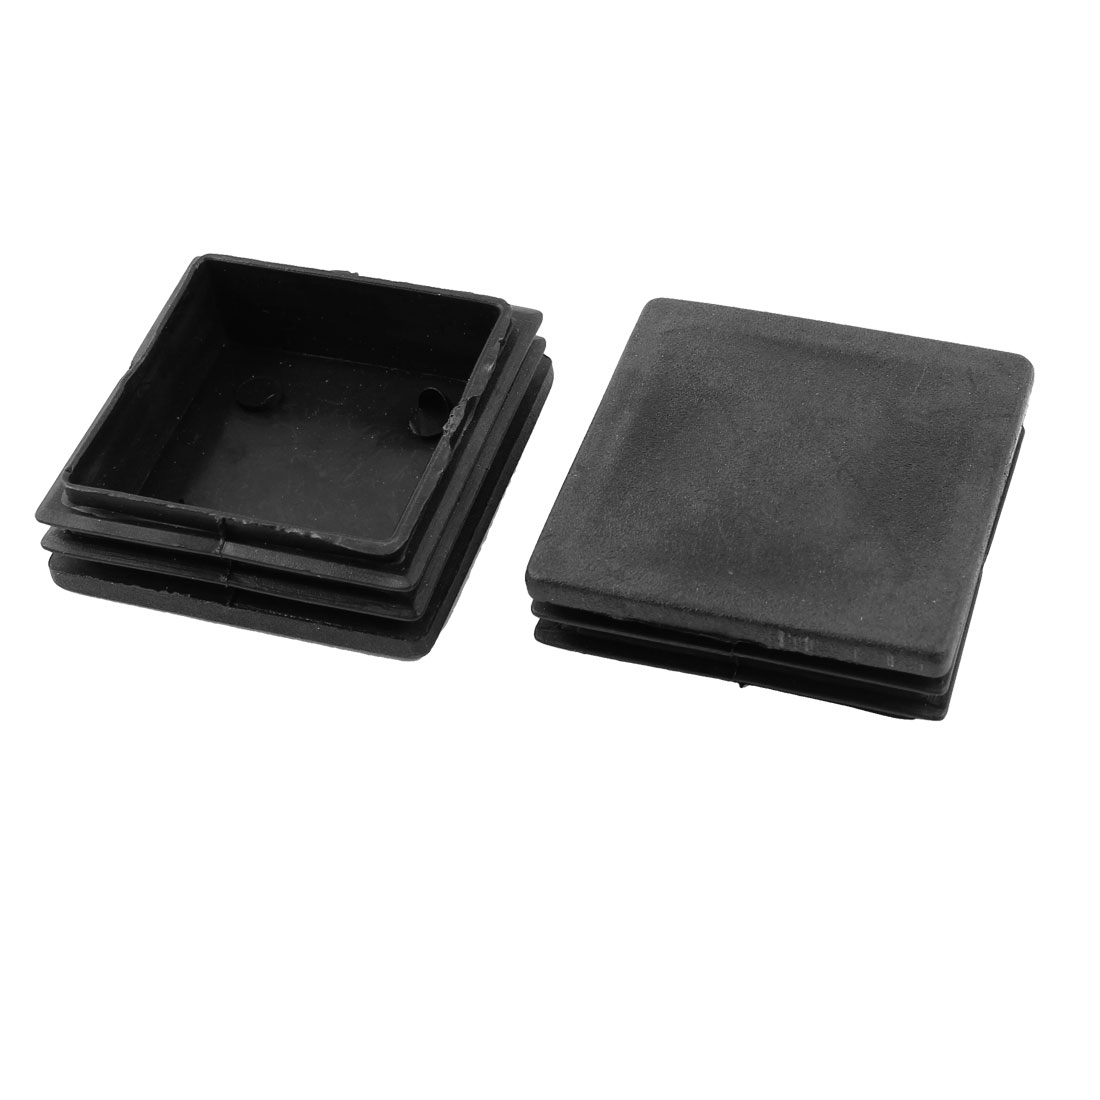 2 Pcs Black Plastic Square Tube Inserts End Blanking Cap 50mm x 50mm